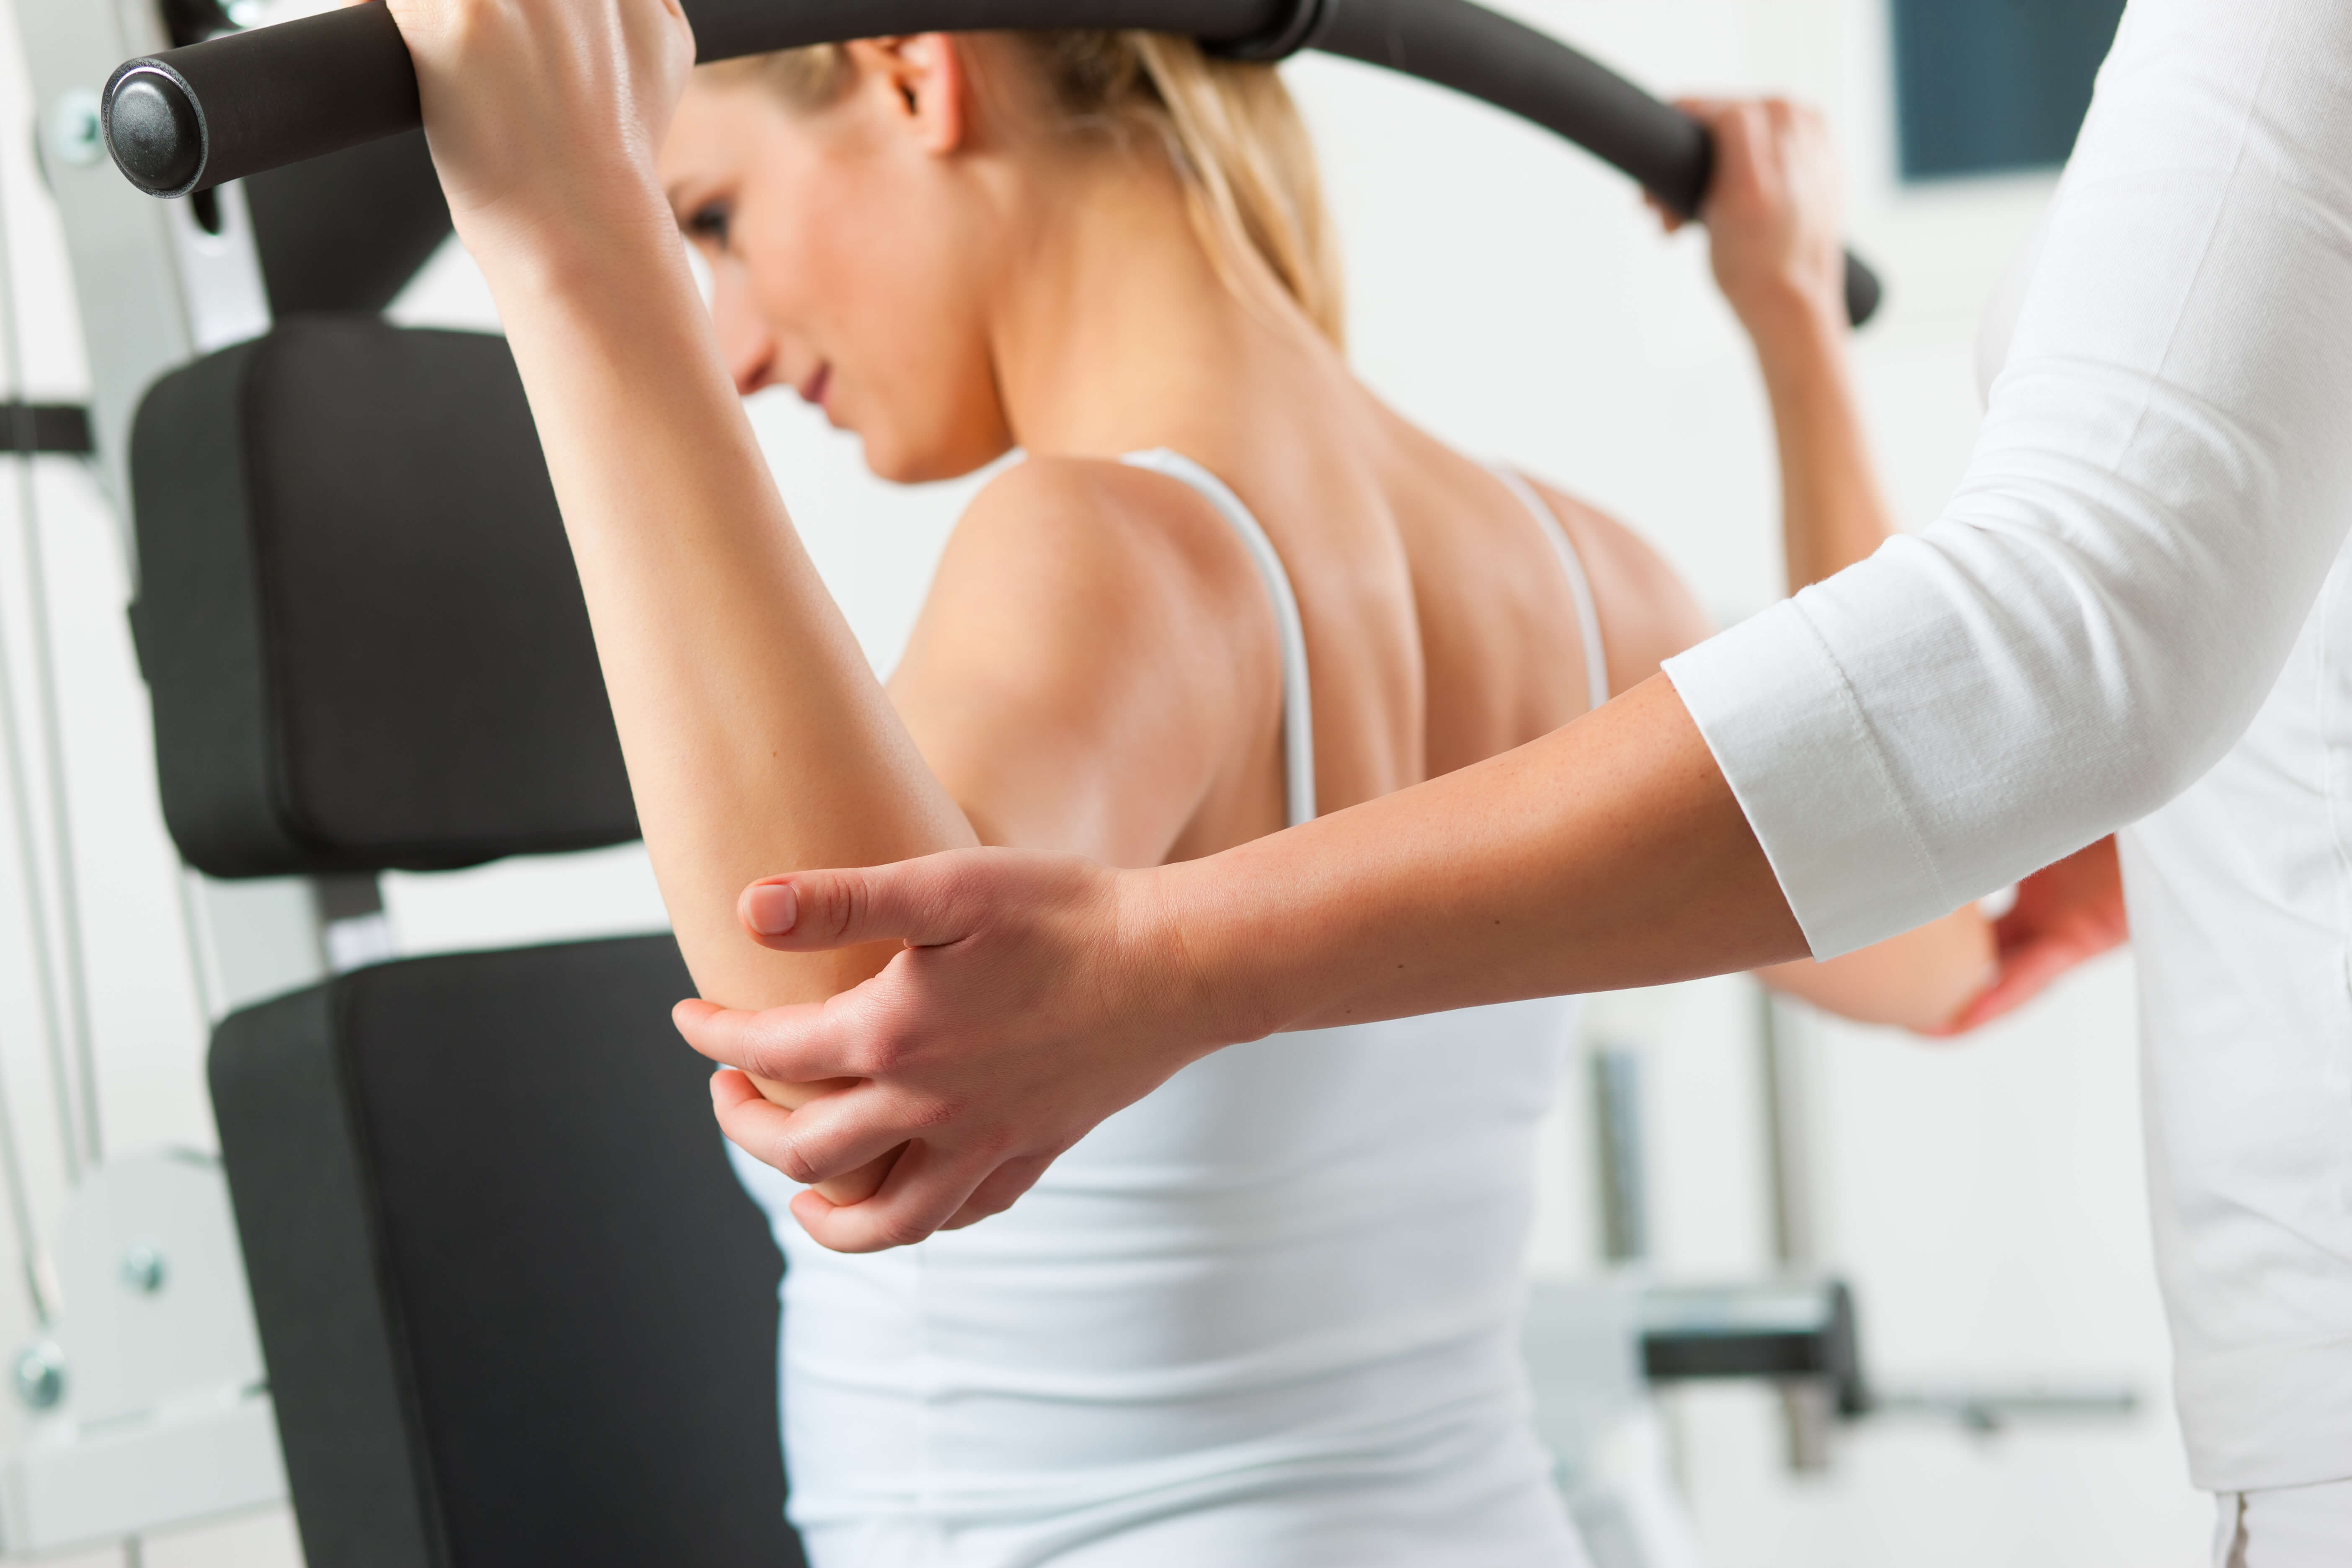 Where can you find sports performance training in Portage, MI?